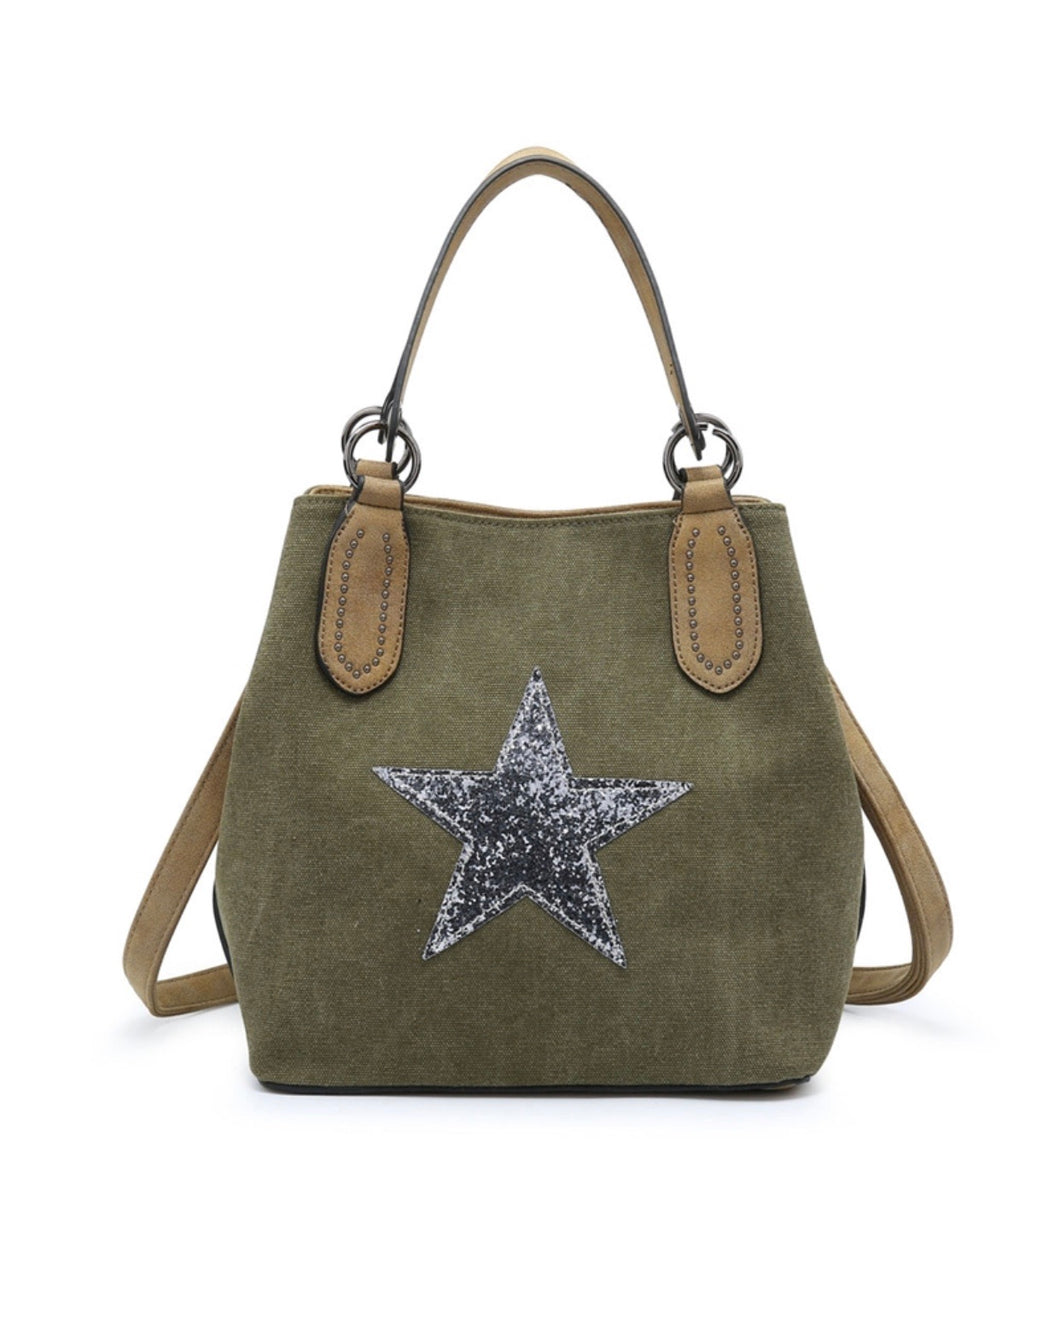 Khaki bucket star bag with shoulder strap